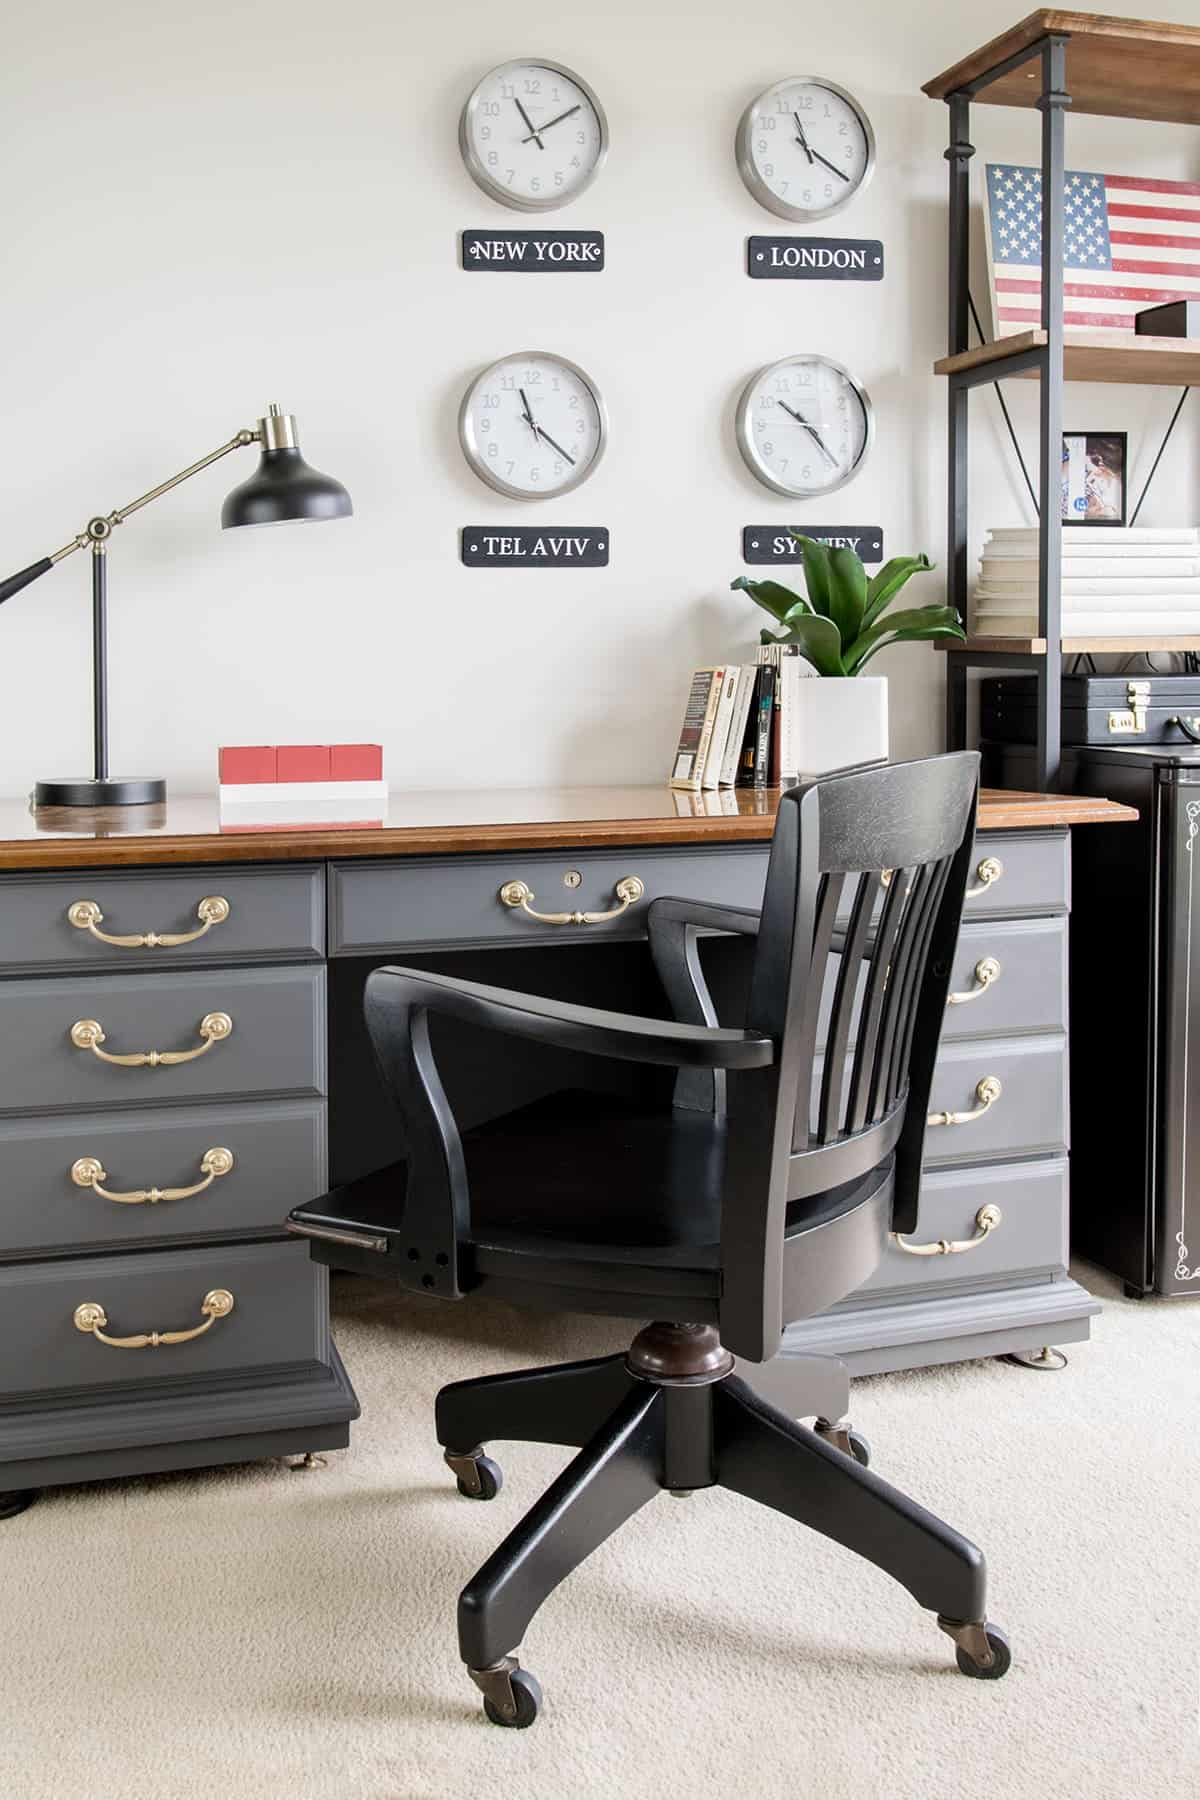 Masculine and patriotic home office after makeover with world clock display, refinished antique desk, and painted office chair.